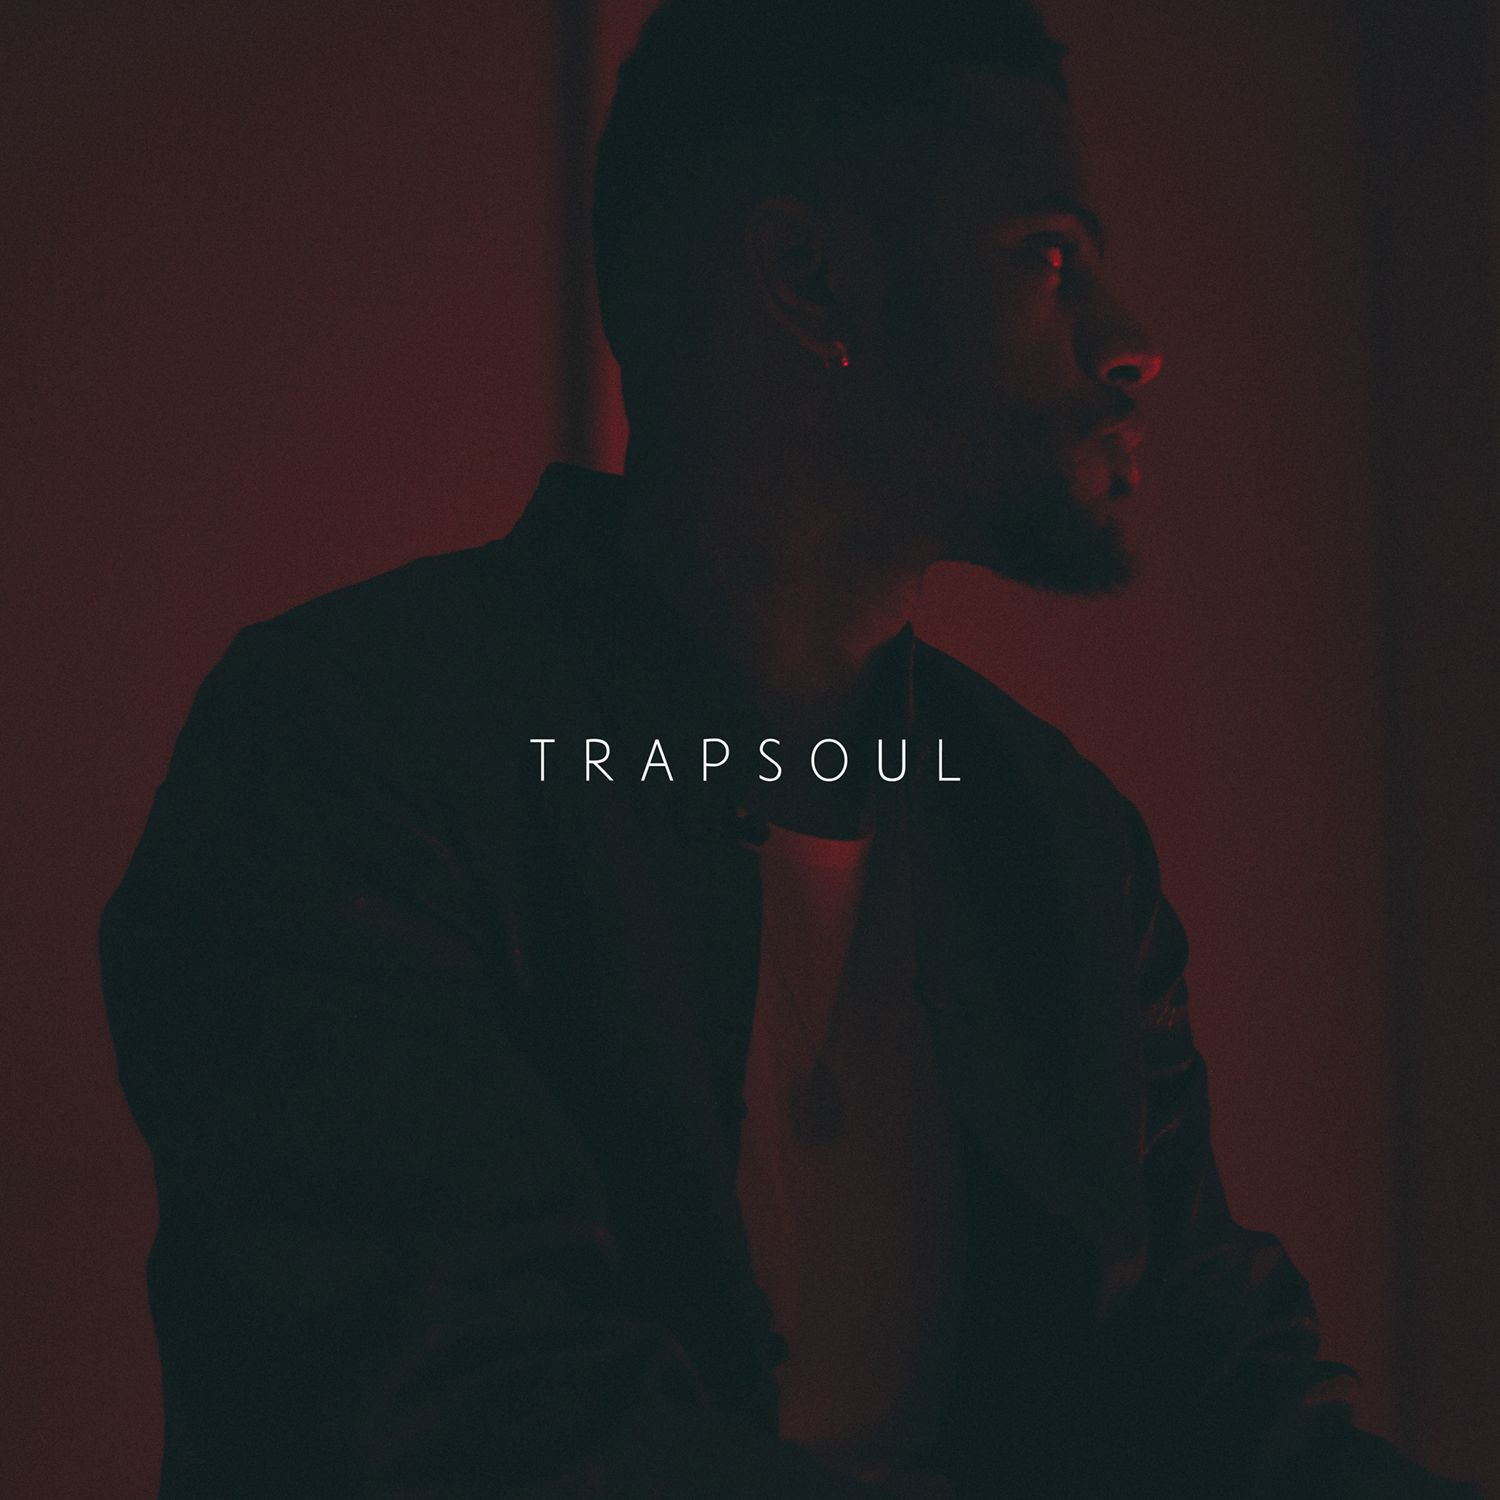 TRAPSOUL album cover